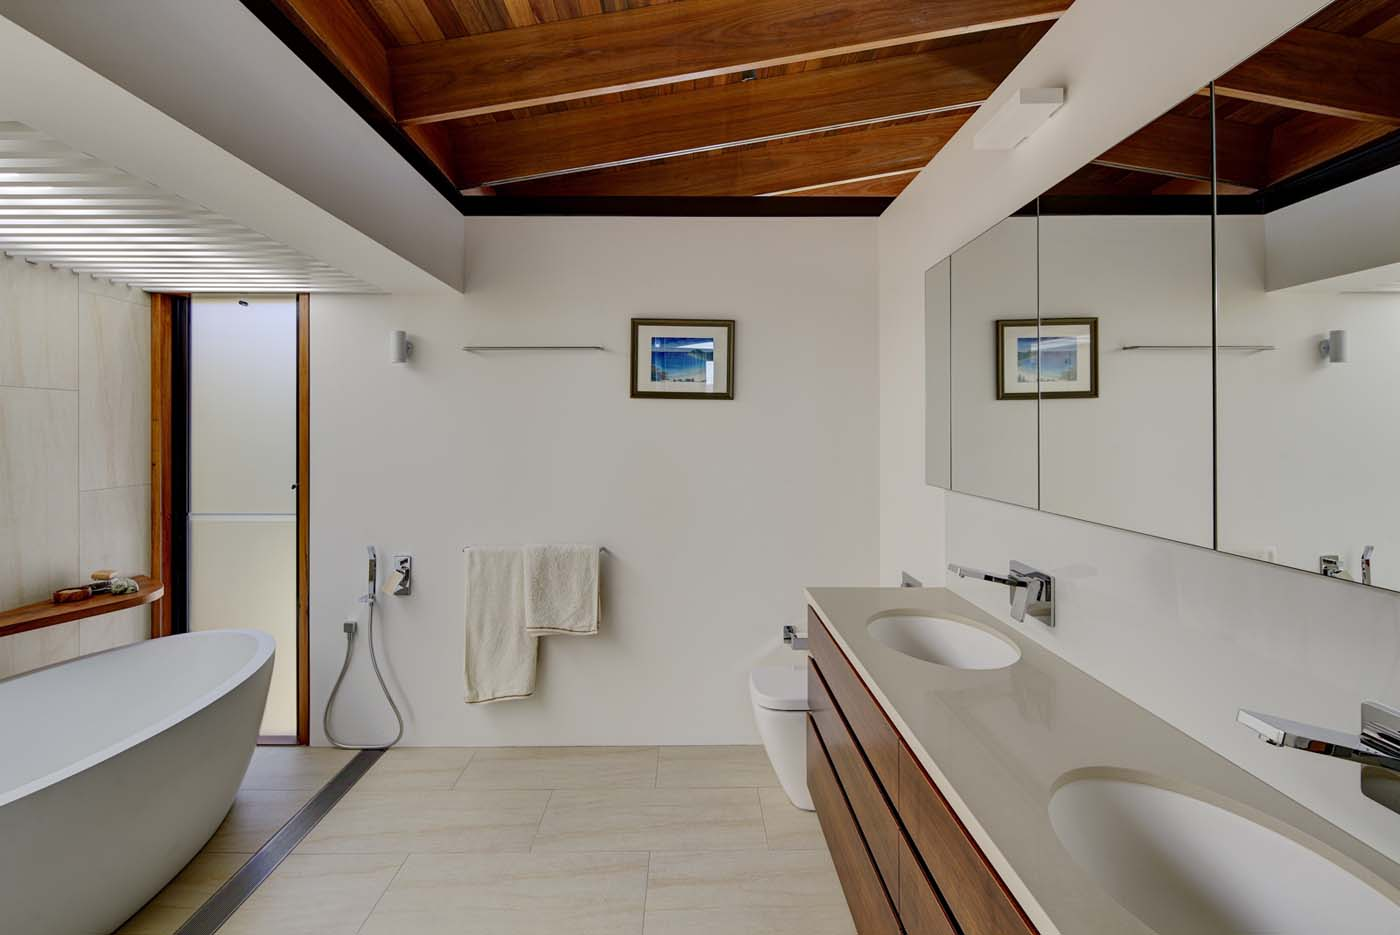 The Bower by Sam Crawford Architect, bathroom photo highlighting materiality and fixtures